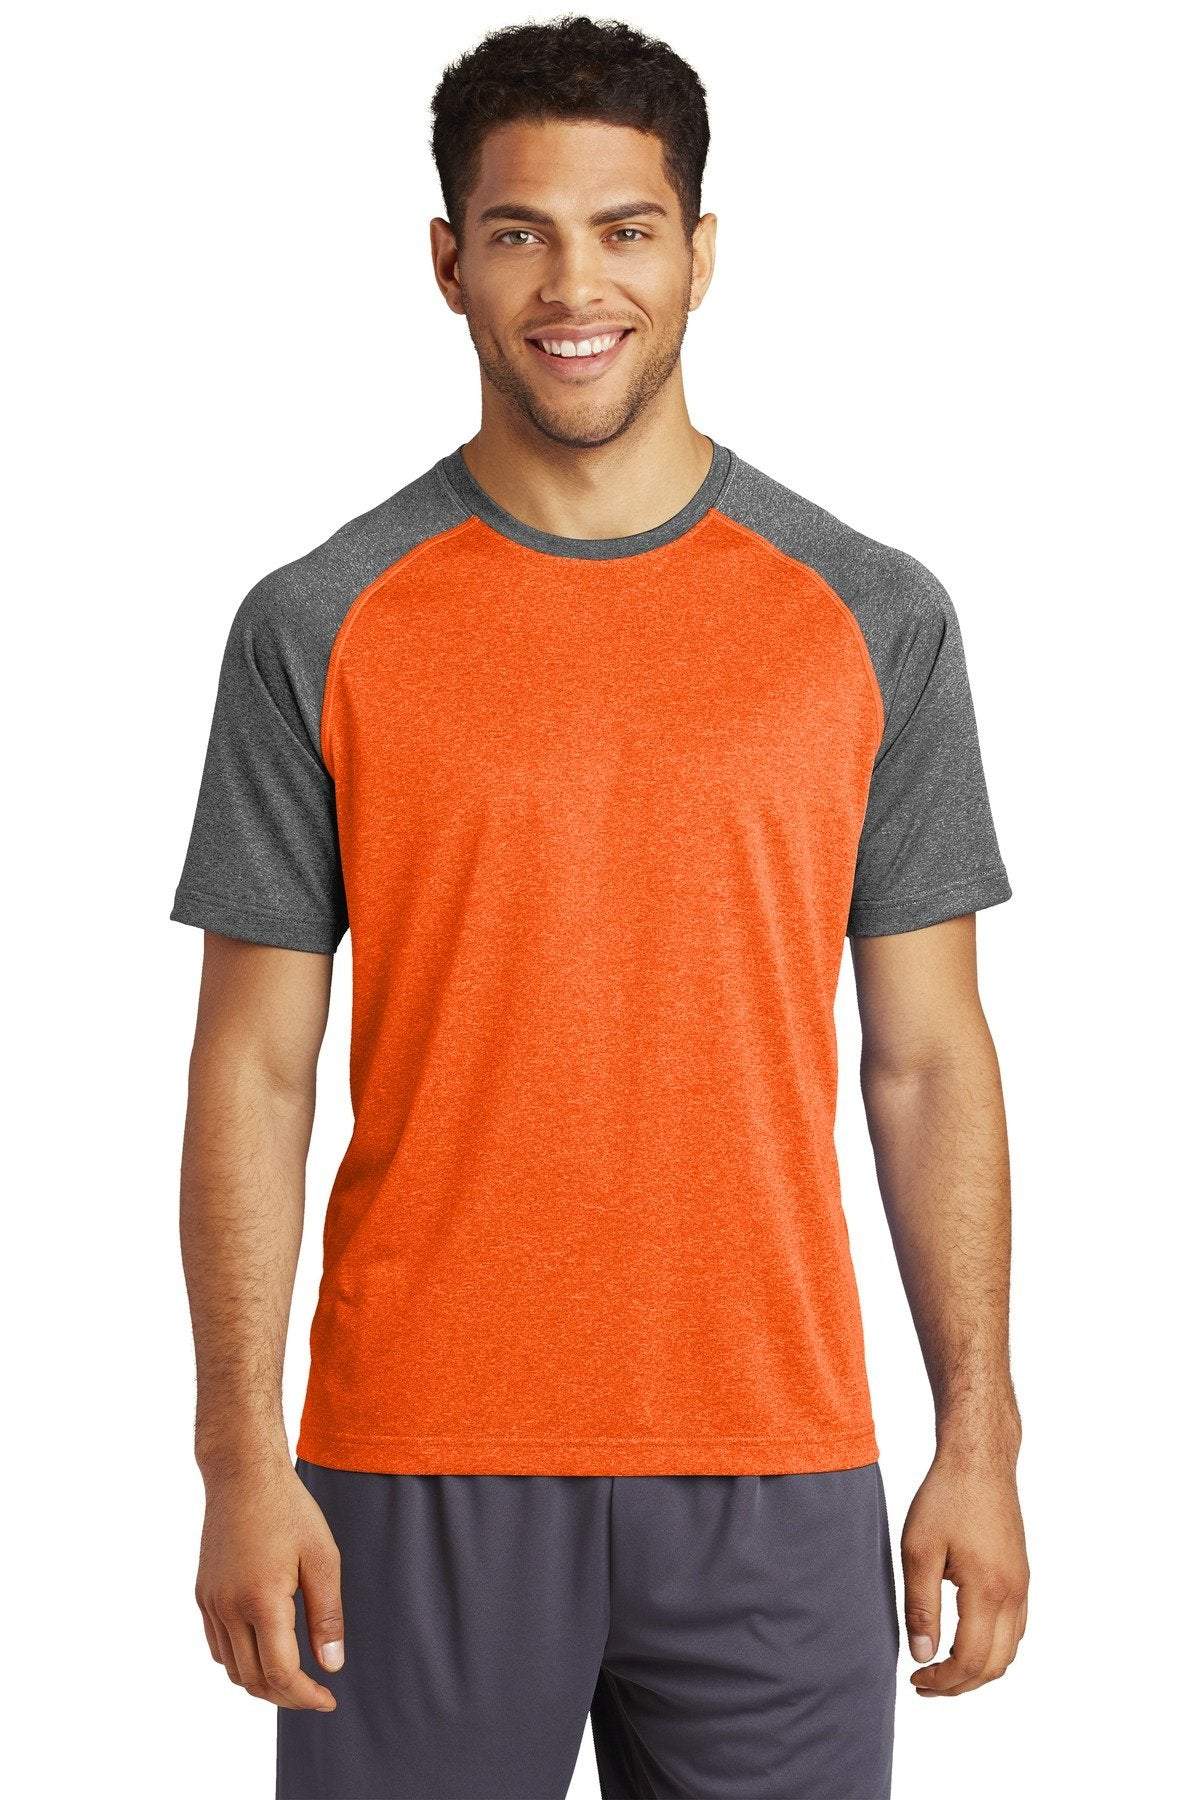 Deep Orange Heather/Graphite Heather - Sport-Tek ST362